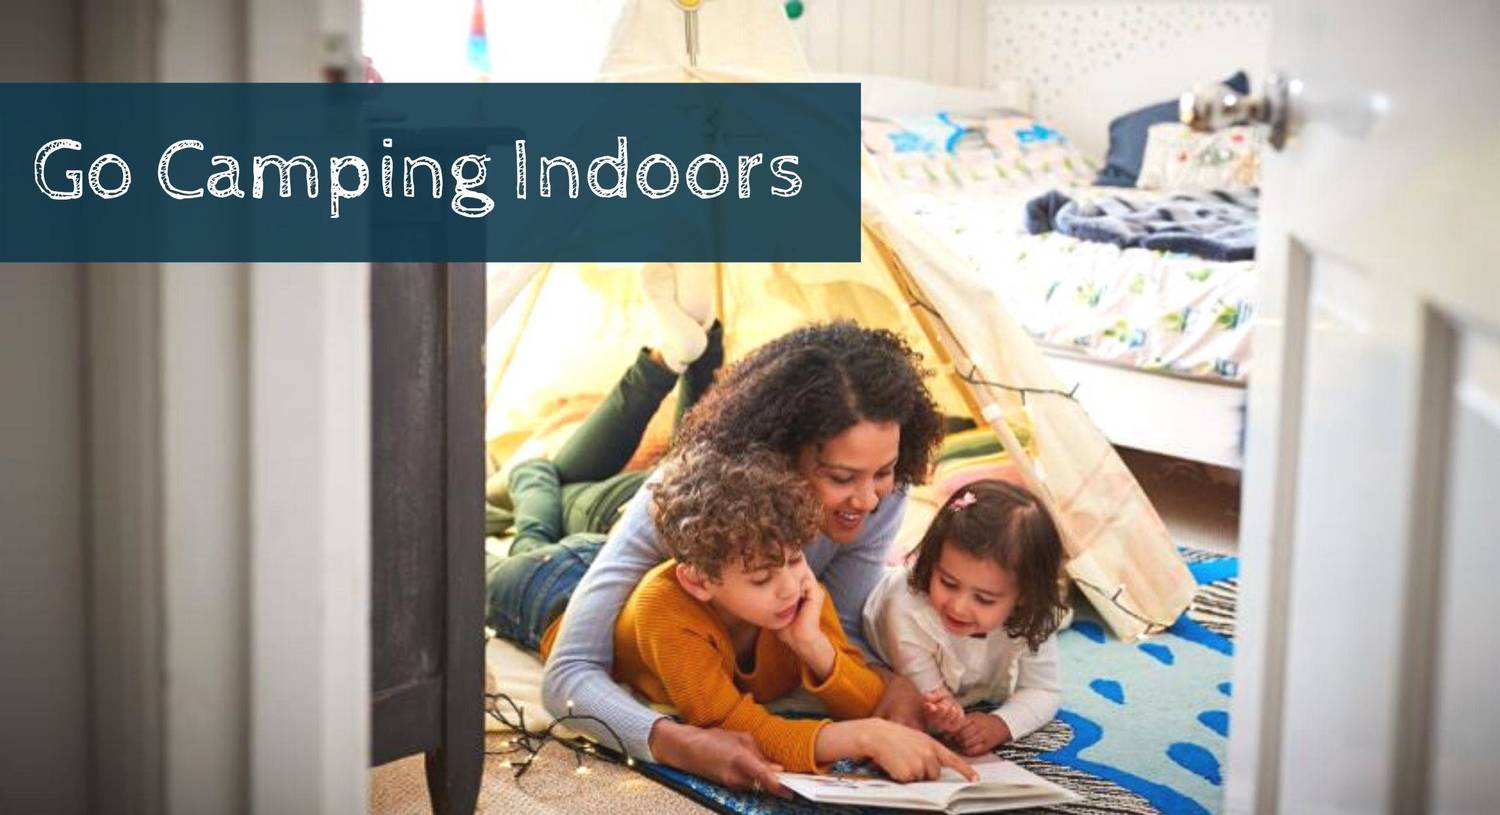 Have An Indoor Camp-out